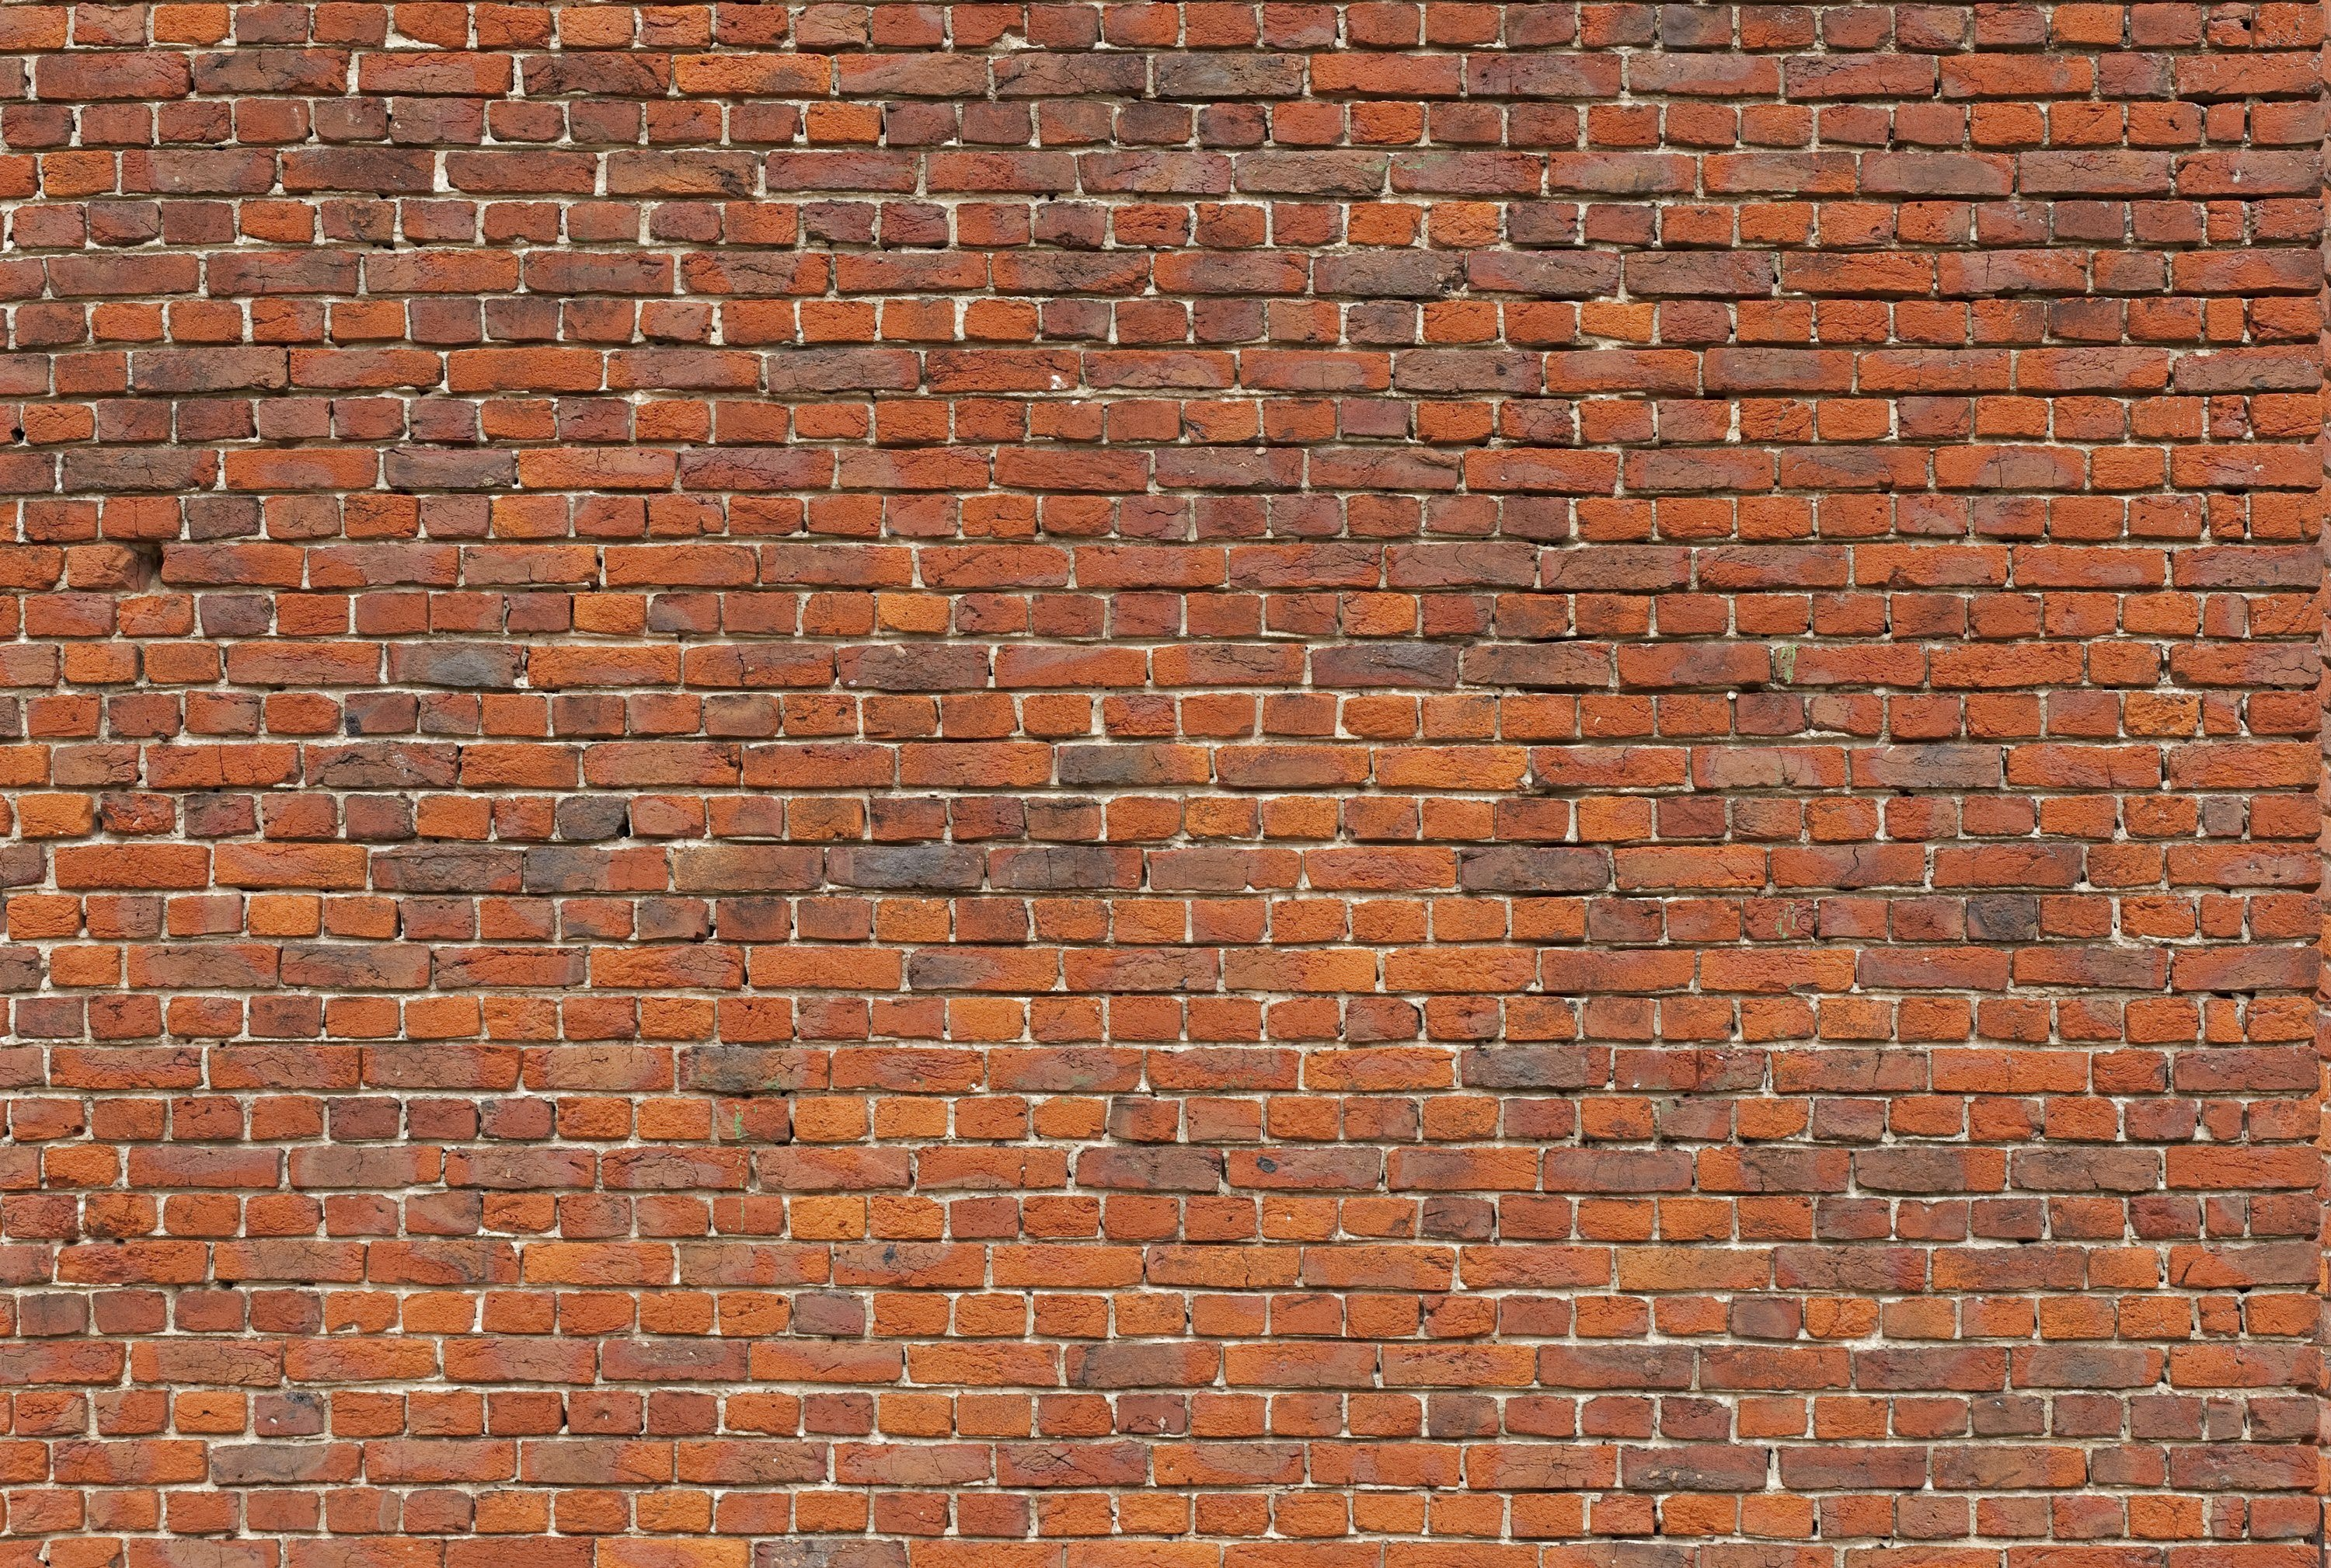 35+ Brick Wall Backgrounds - PSD, Vector EPS, JPG Download ...